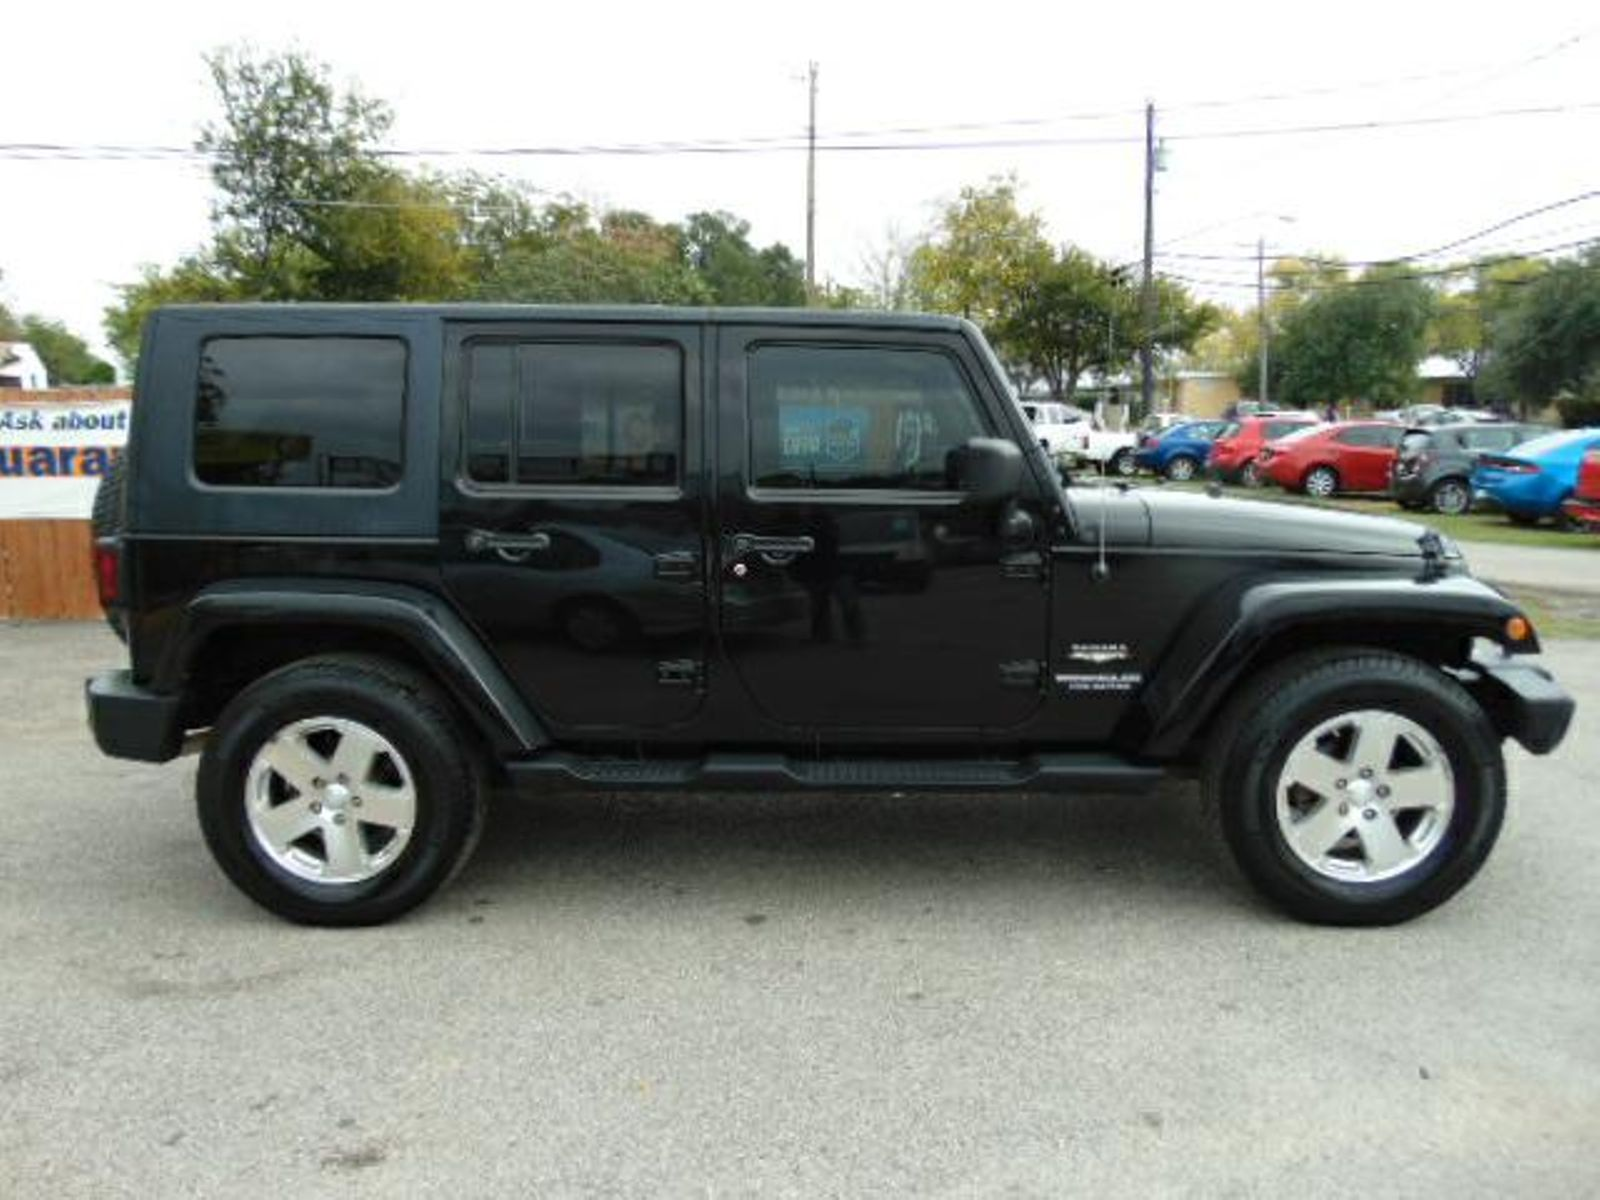 cc view for of sale com picture c large jeep std in austin wrangler classiccars listings texas lveb